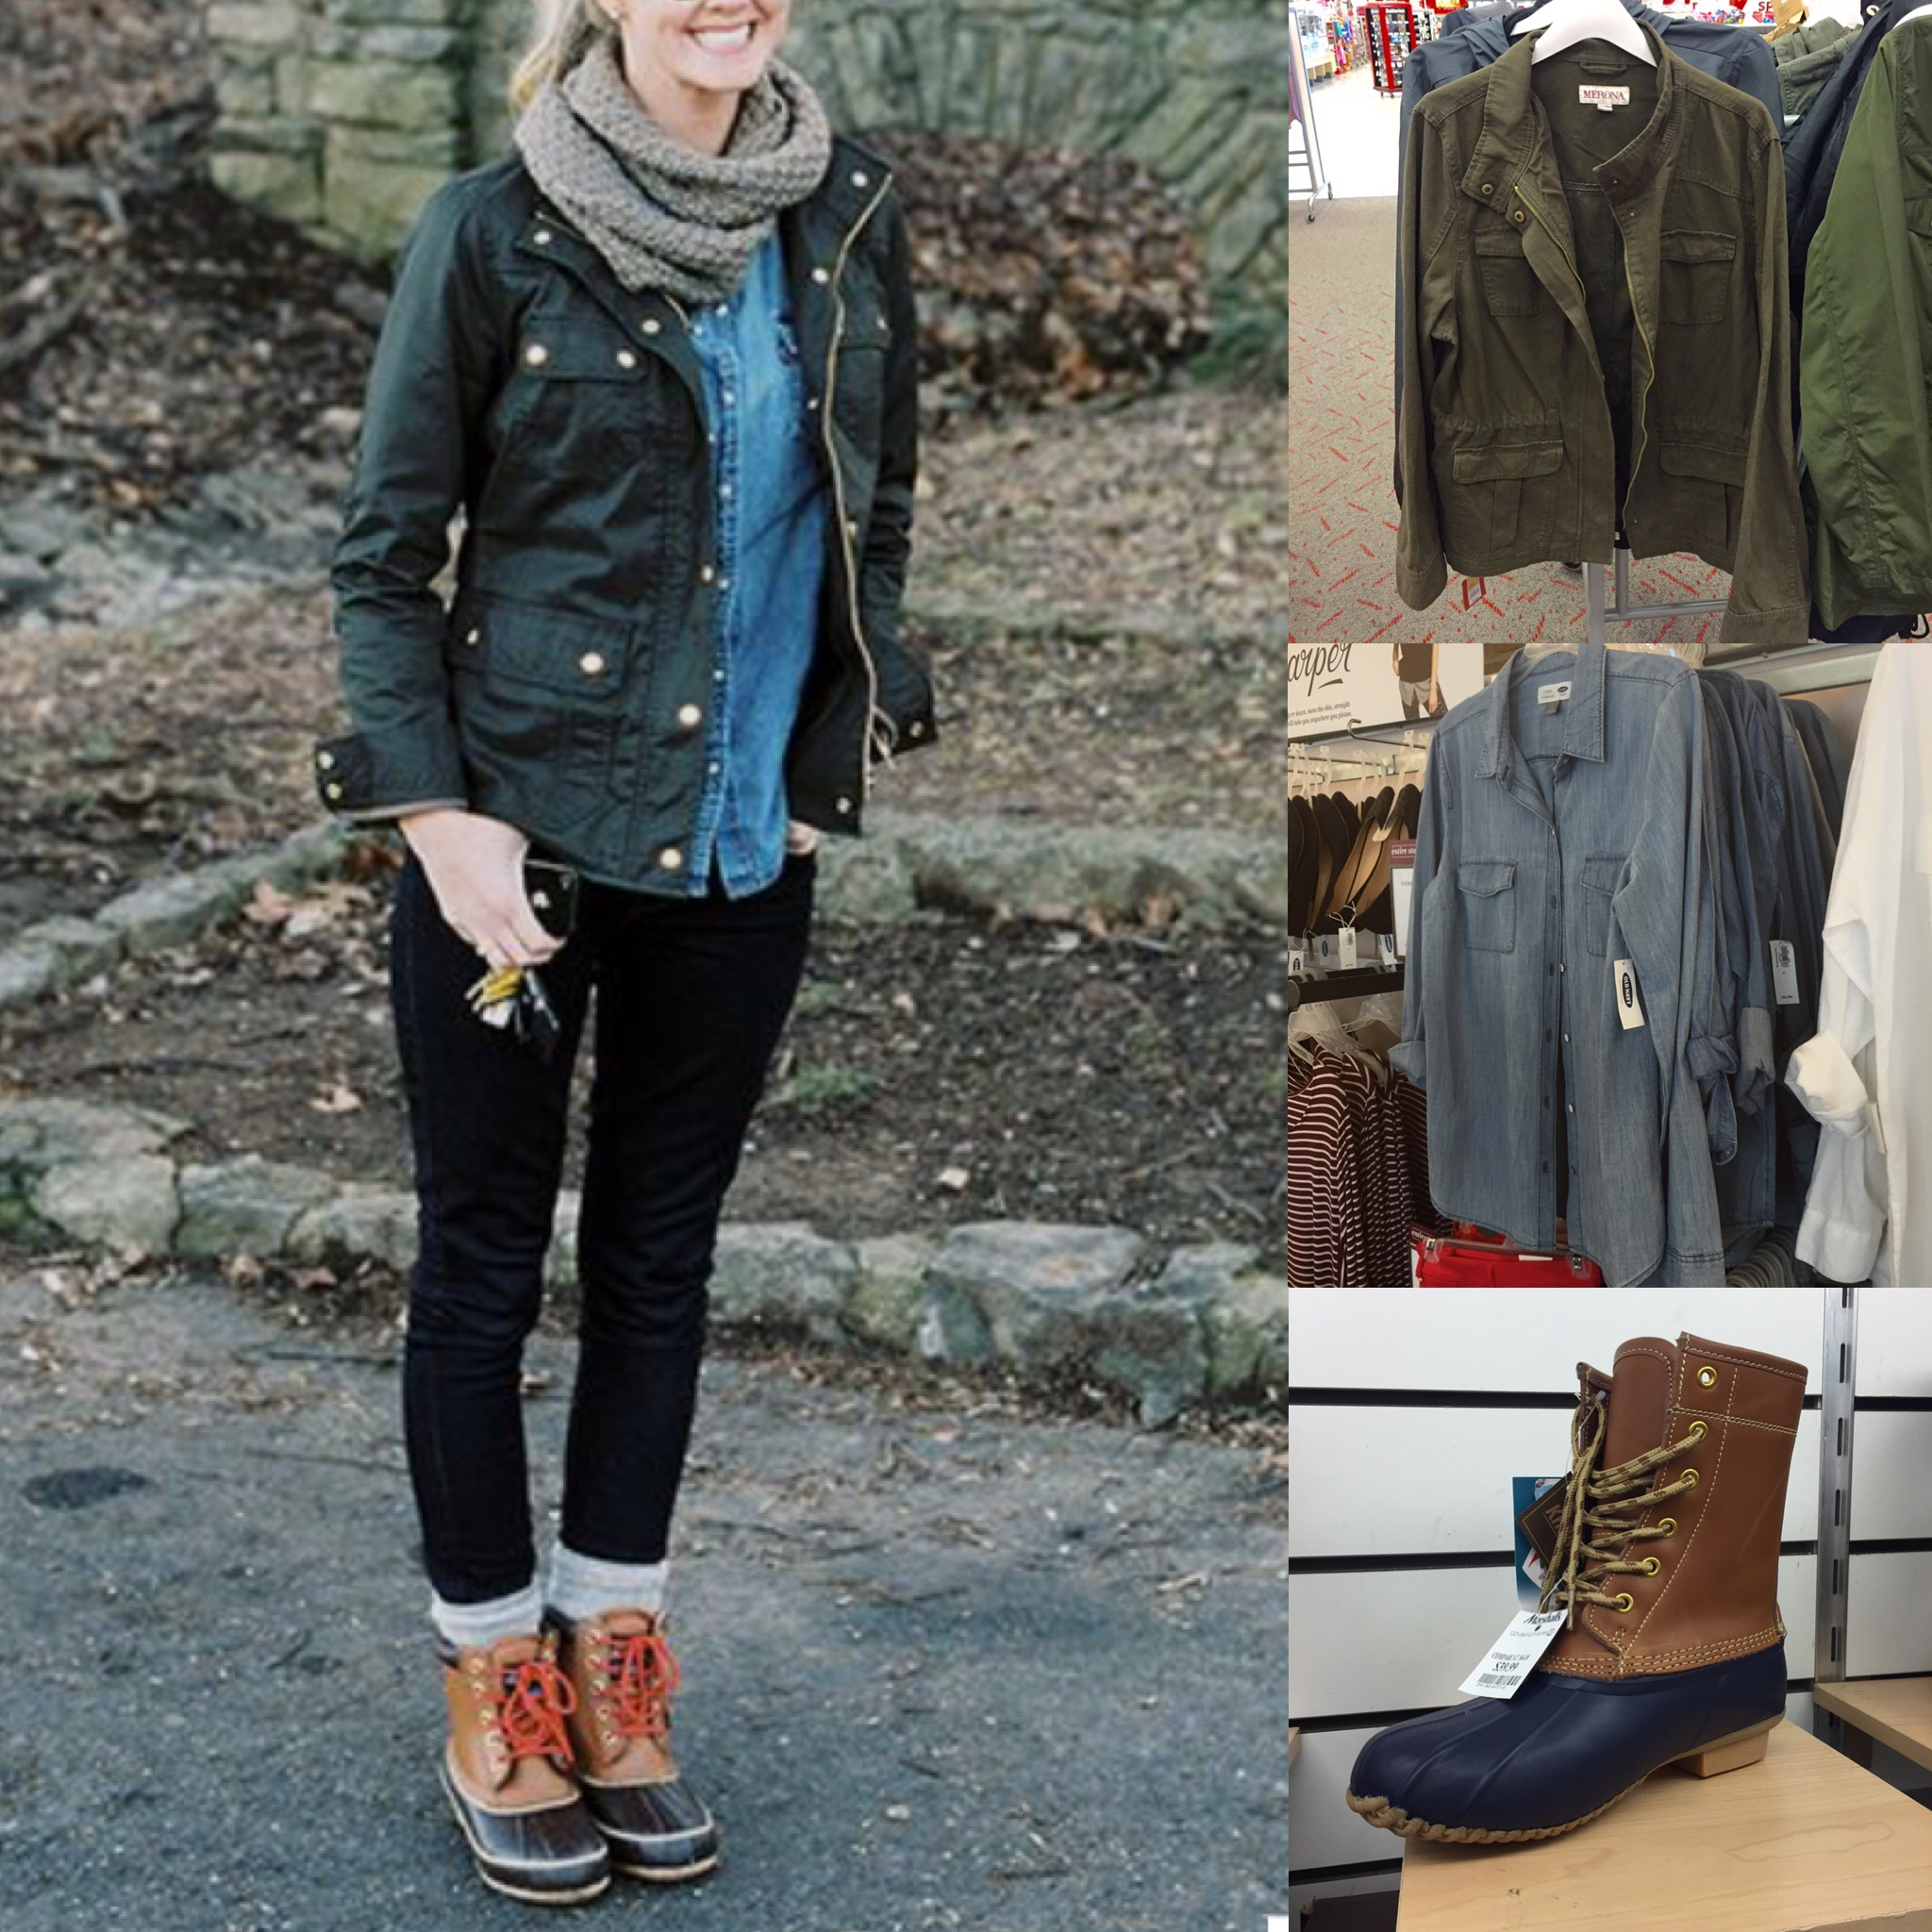 Fall Outfit Idea Preppy Duck Boot Inspiration from Pinterest - The Budget Babe | Affordable ...